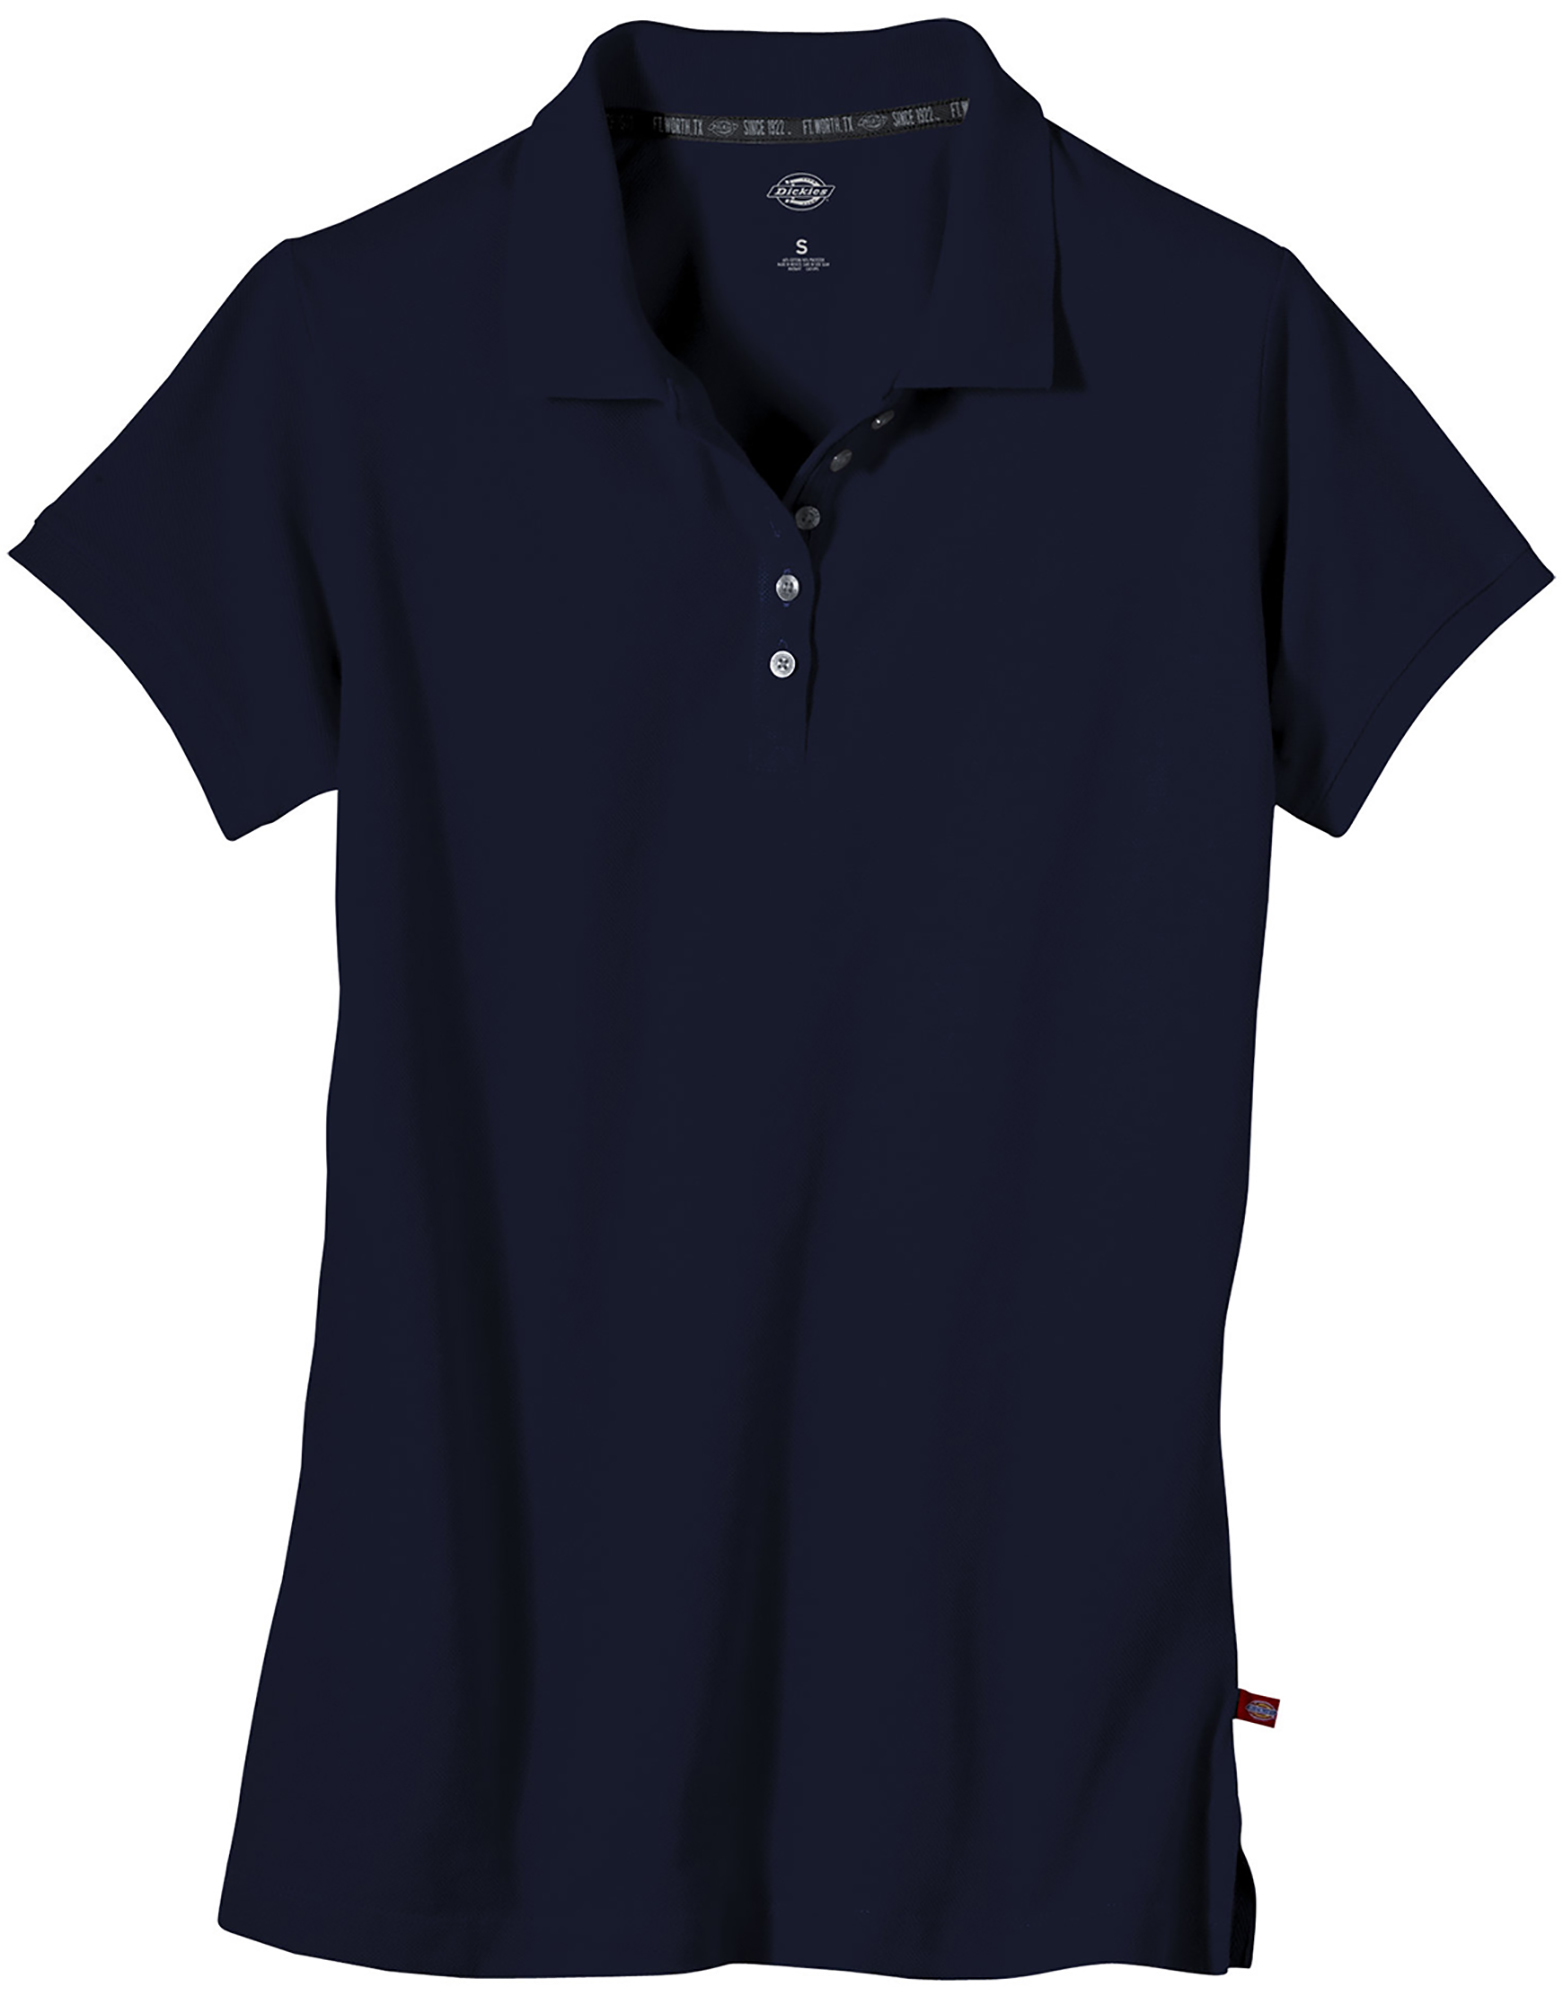 Women's Plus Size Solid Piqué Polo Shirt - Dark Navy (DN)